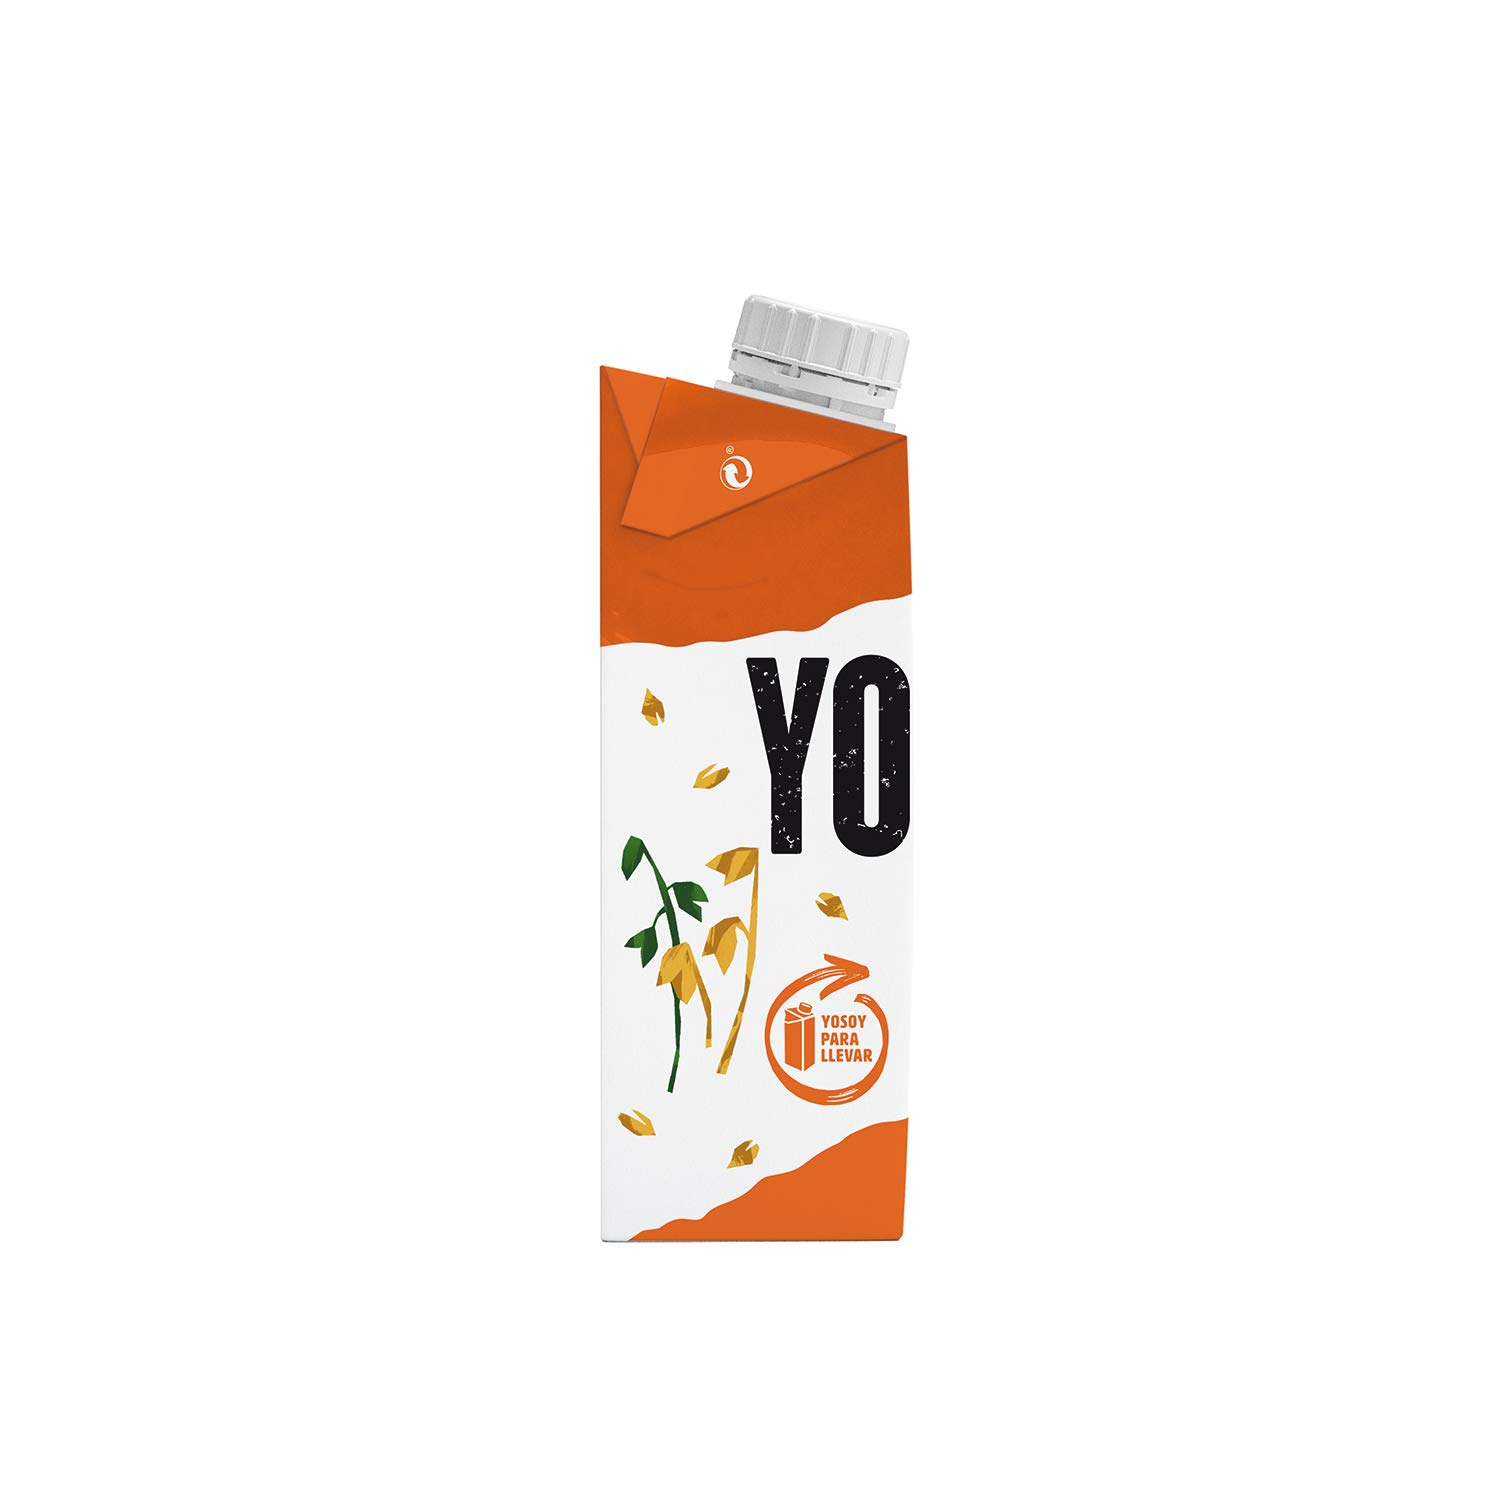 Yosoy - Bebida de Avena - Caja de 8 packs de 3x250ml: Amazon.es ...